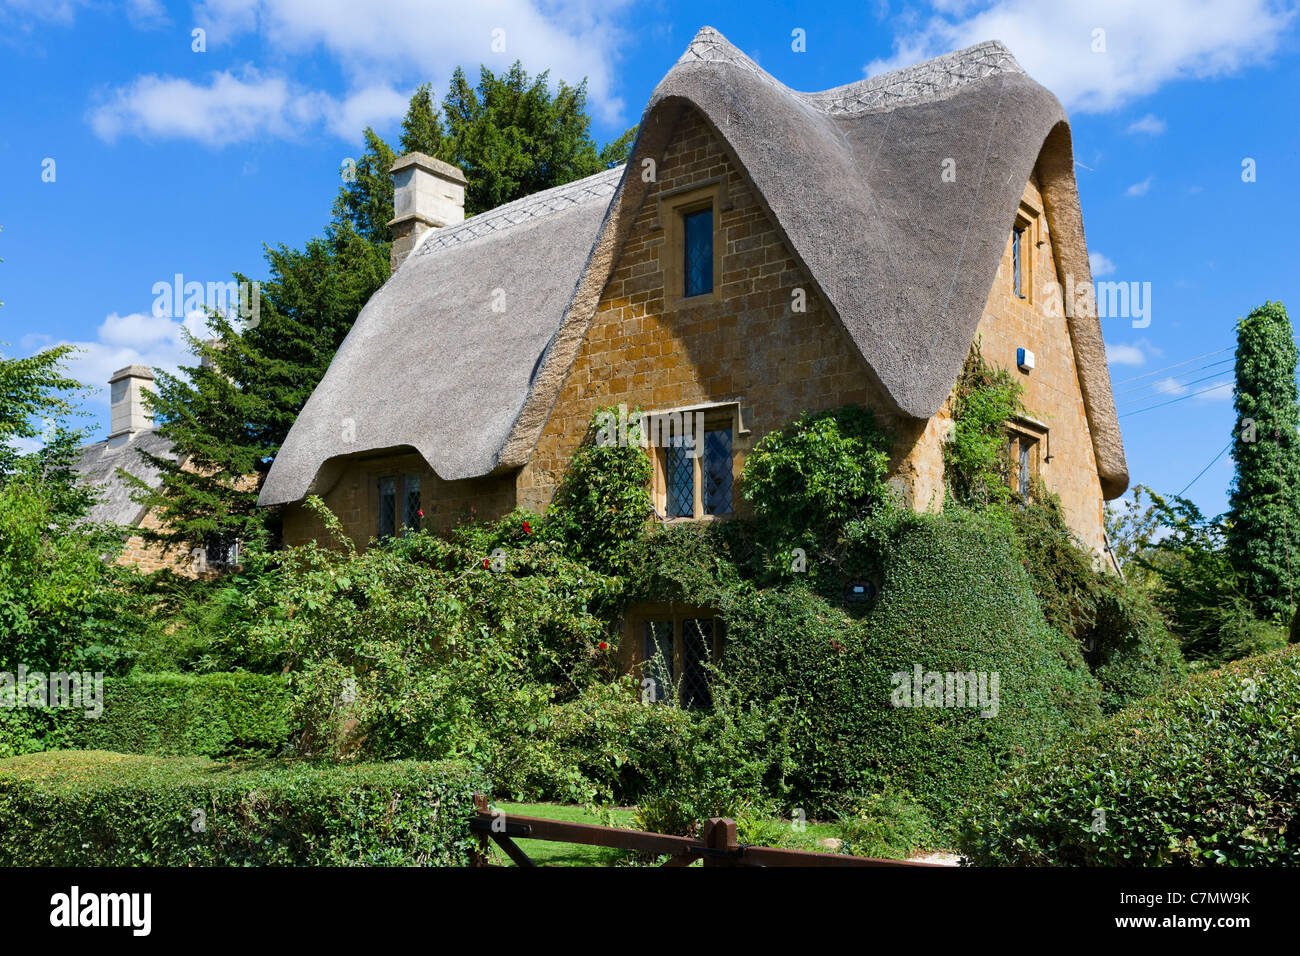 Thatched cottage in the Cotswold village of Great Tew, Oxfordshire, England, UK - Stock Image